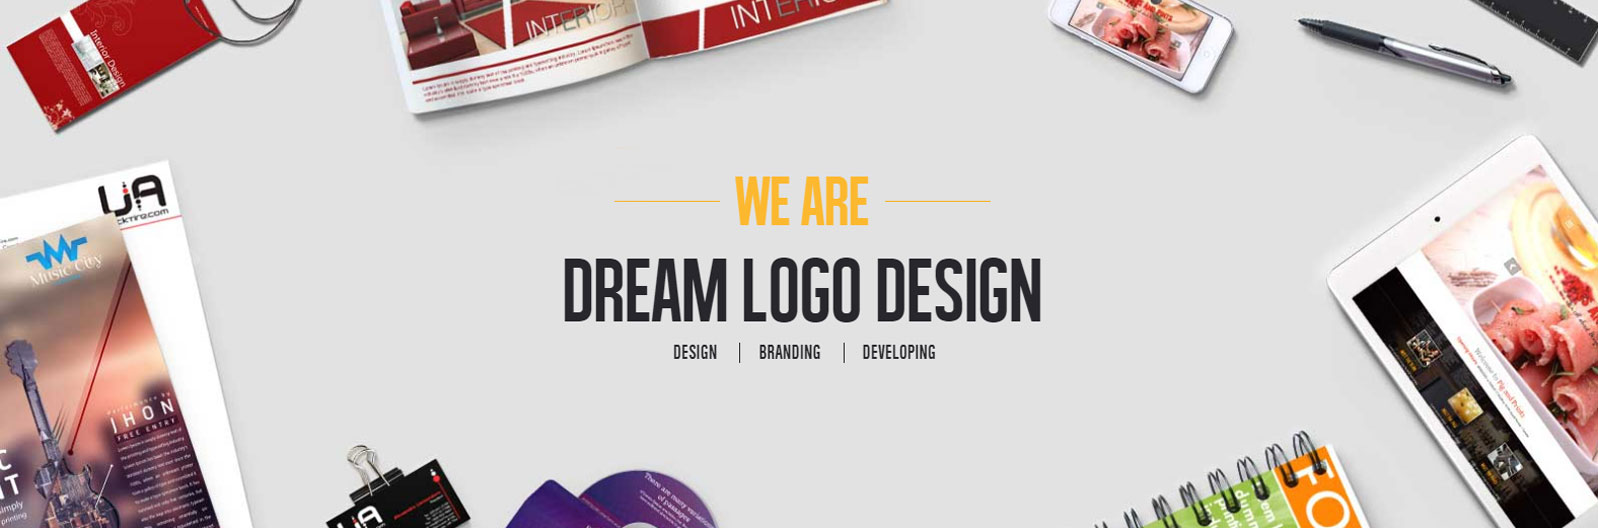 Chess Media Group Entertainment Logo Design – DreamLogoDesign